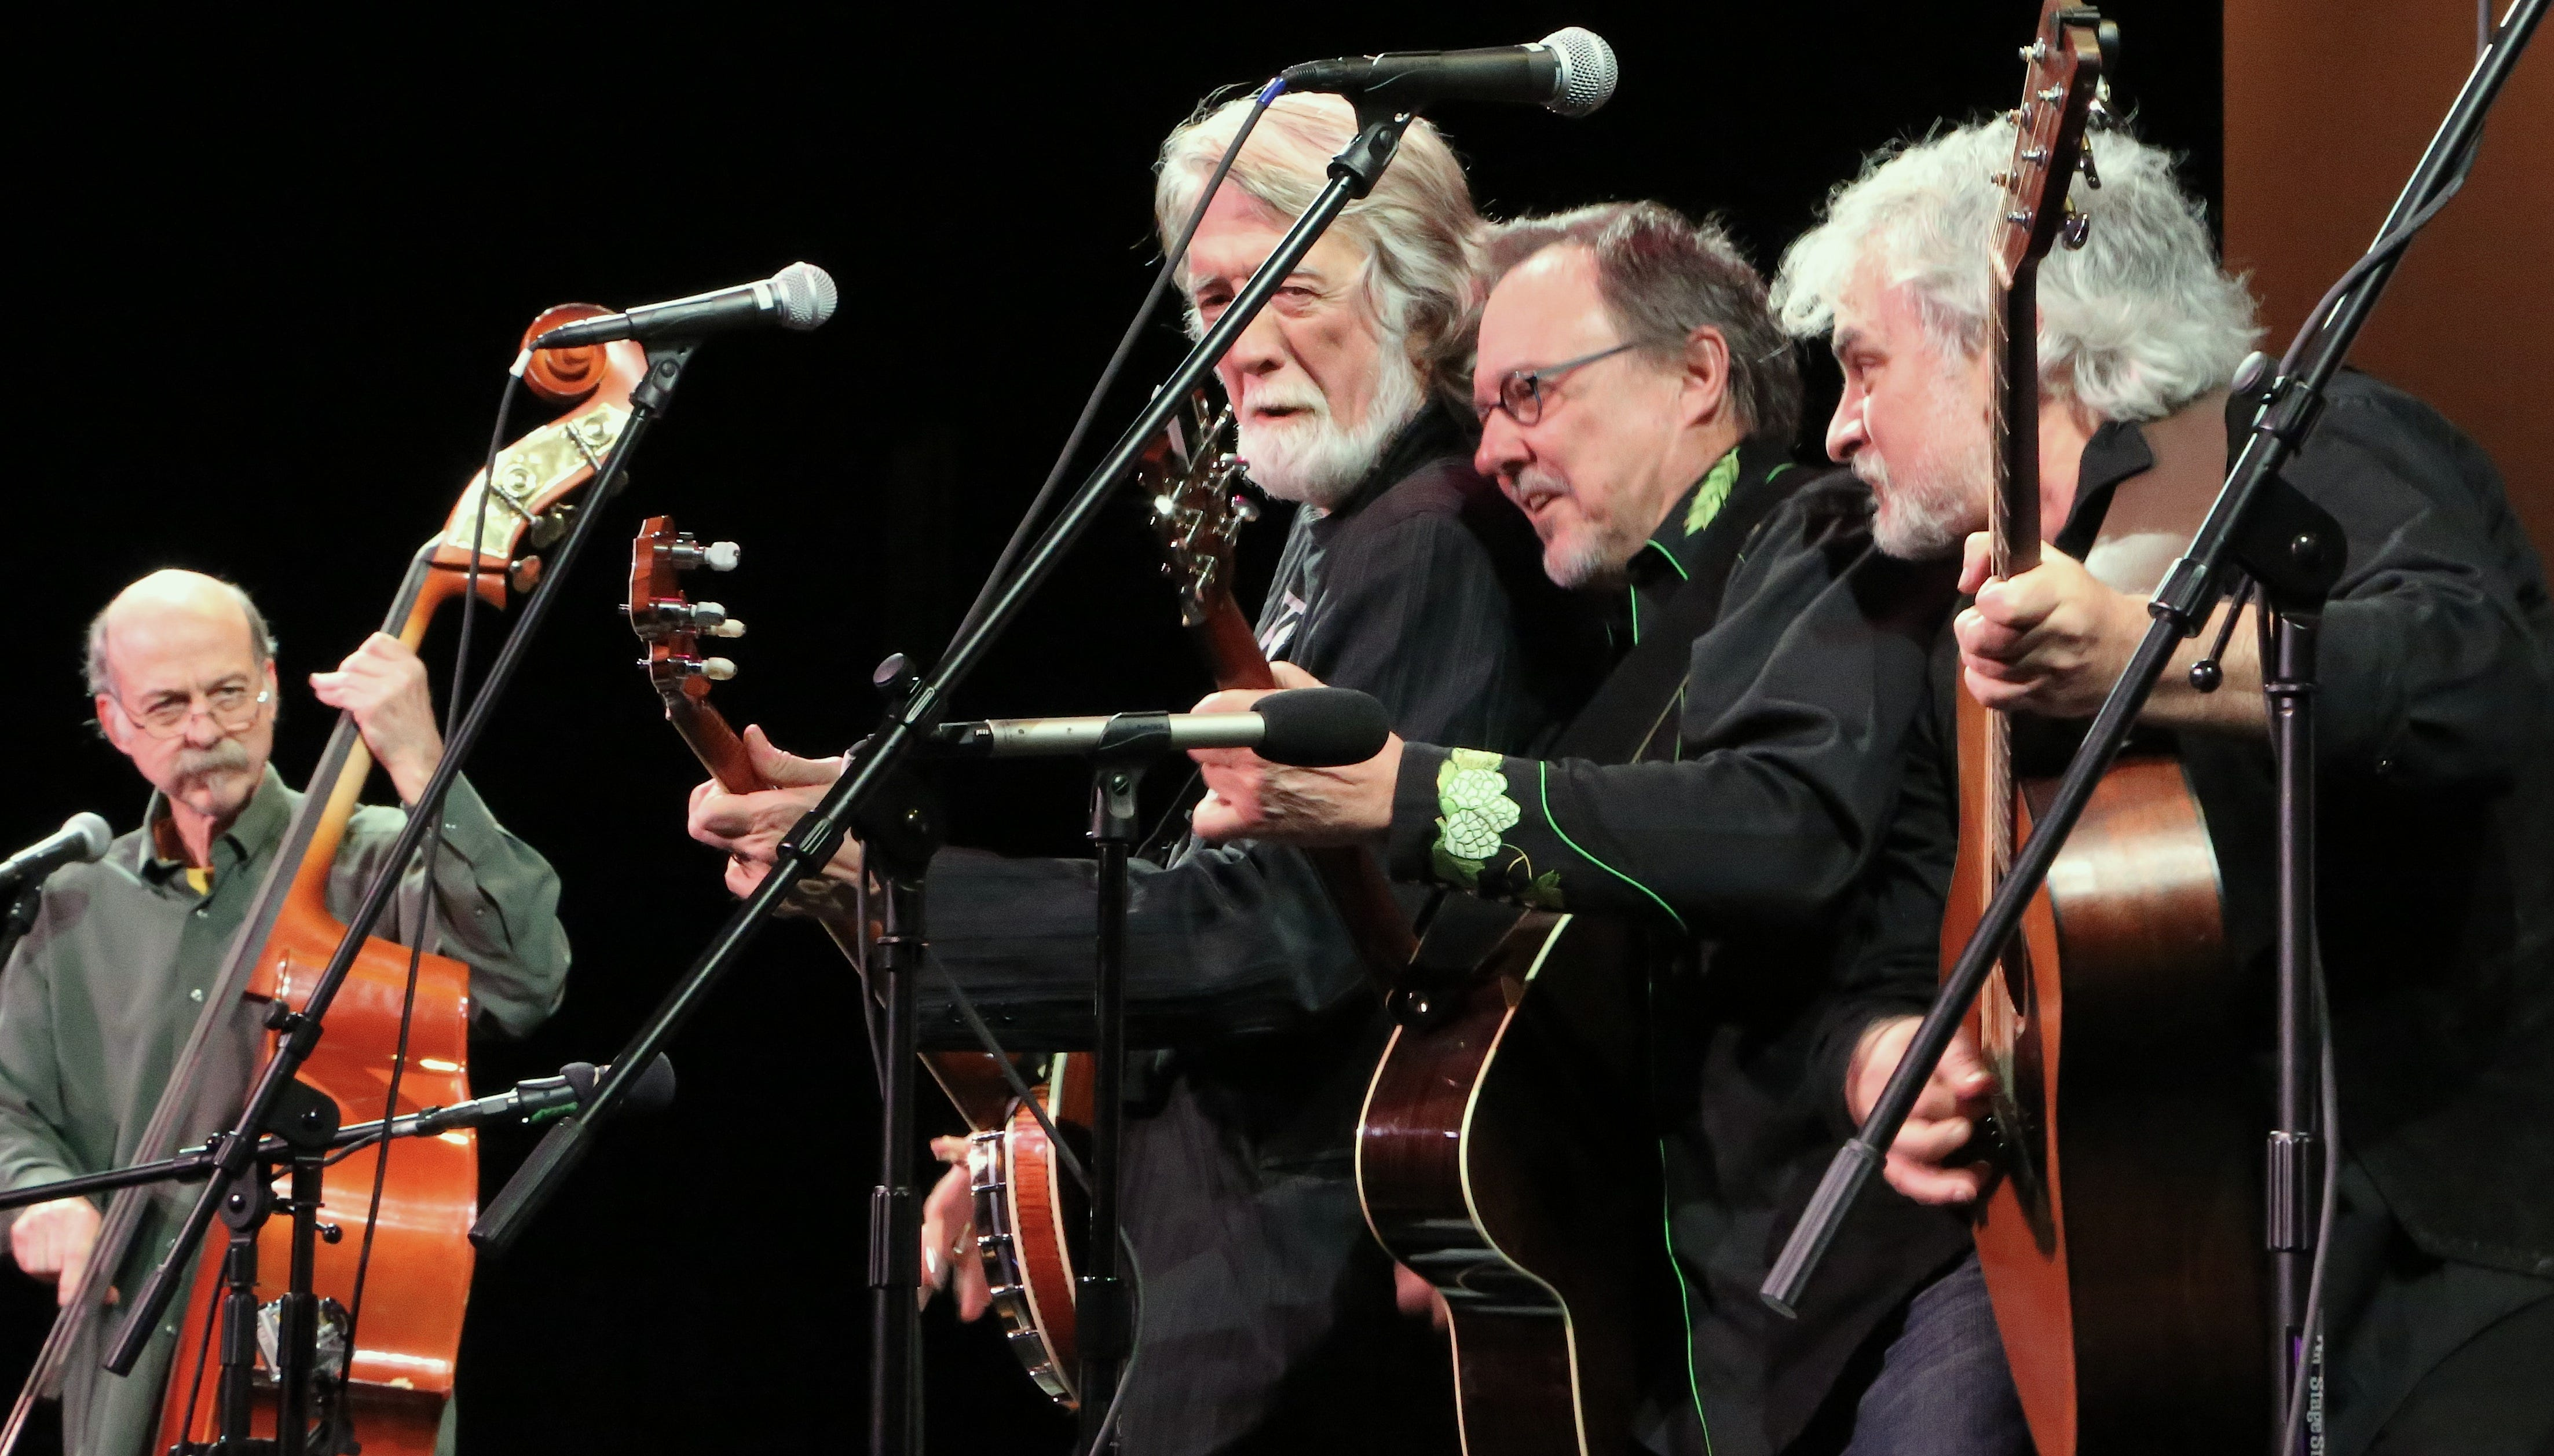 John McEuen and the String Wizards will play songs not heard on stage for years Friday night at the Delphi Opera House.